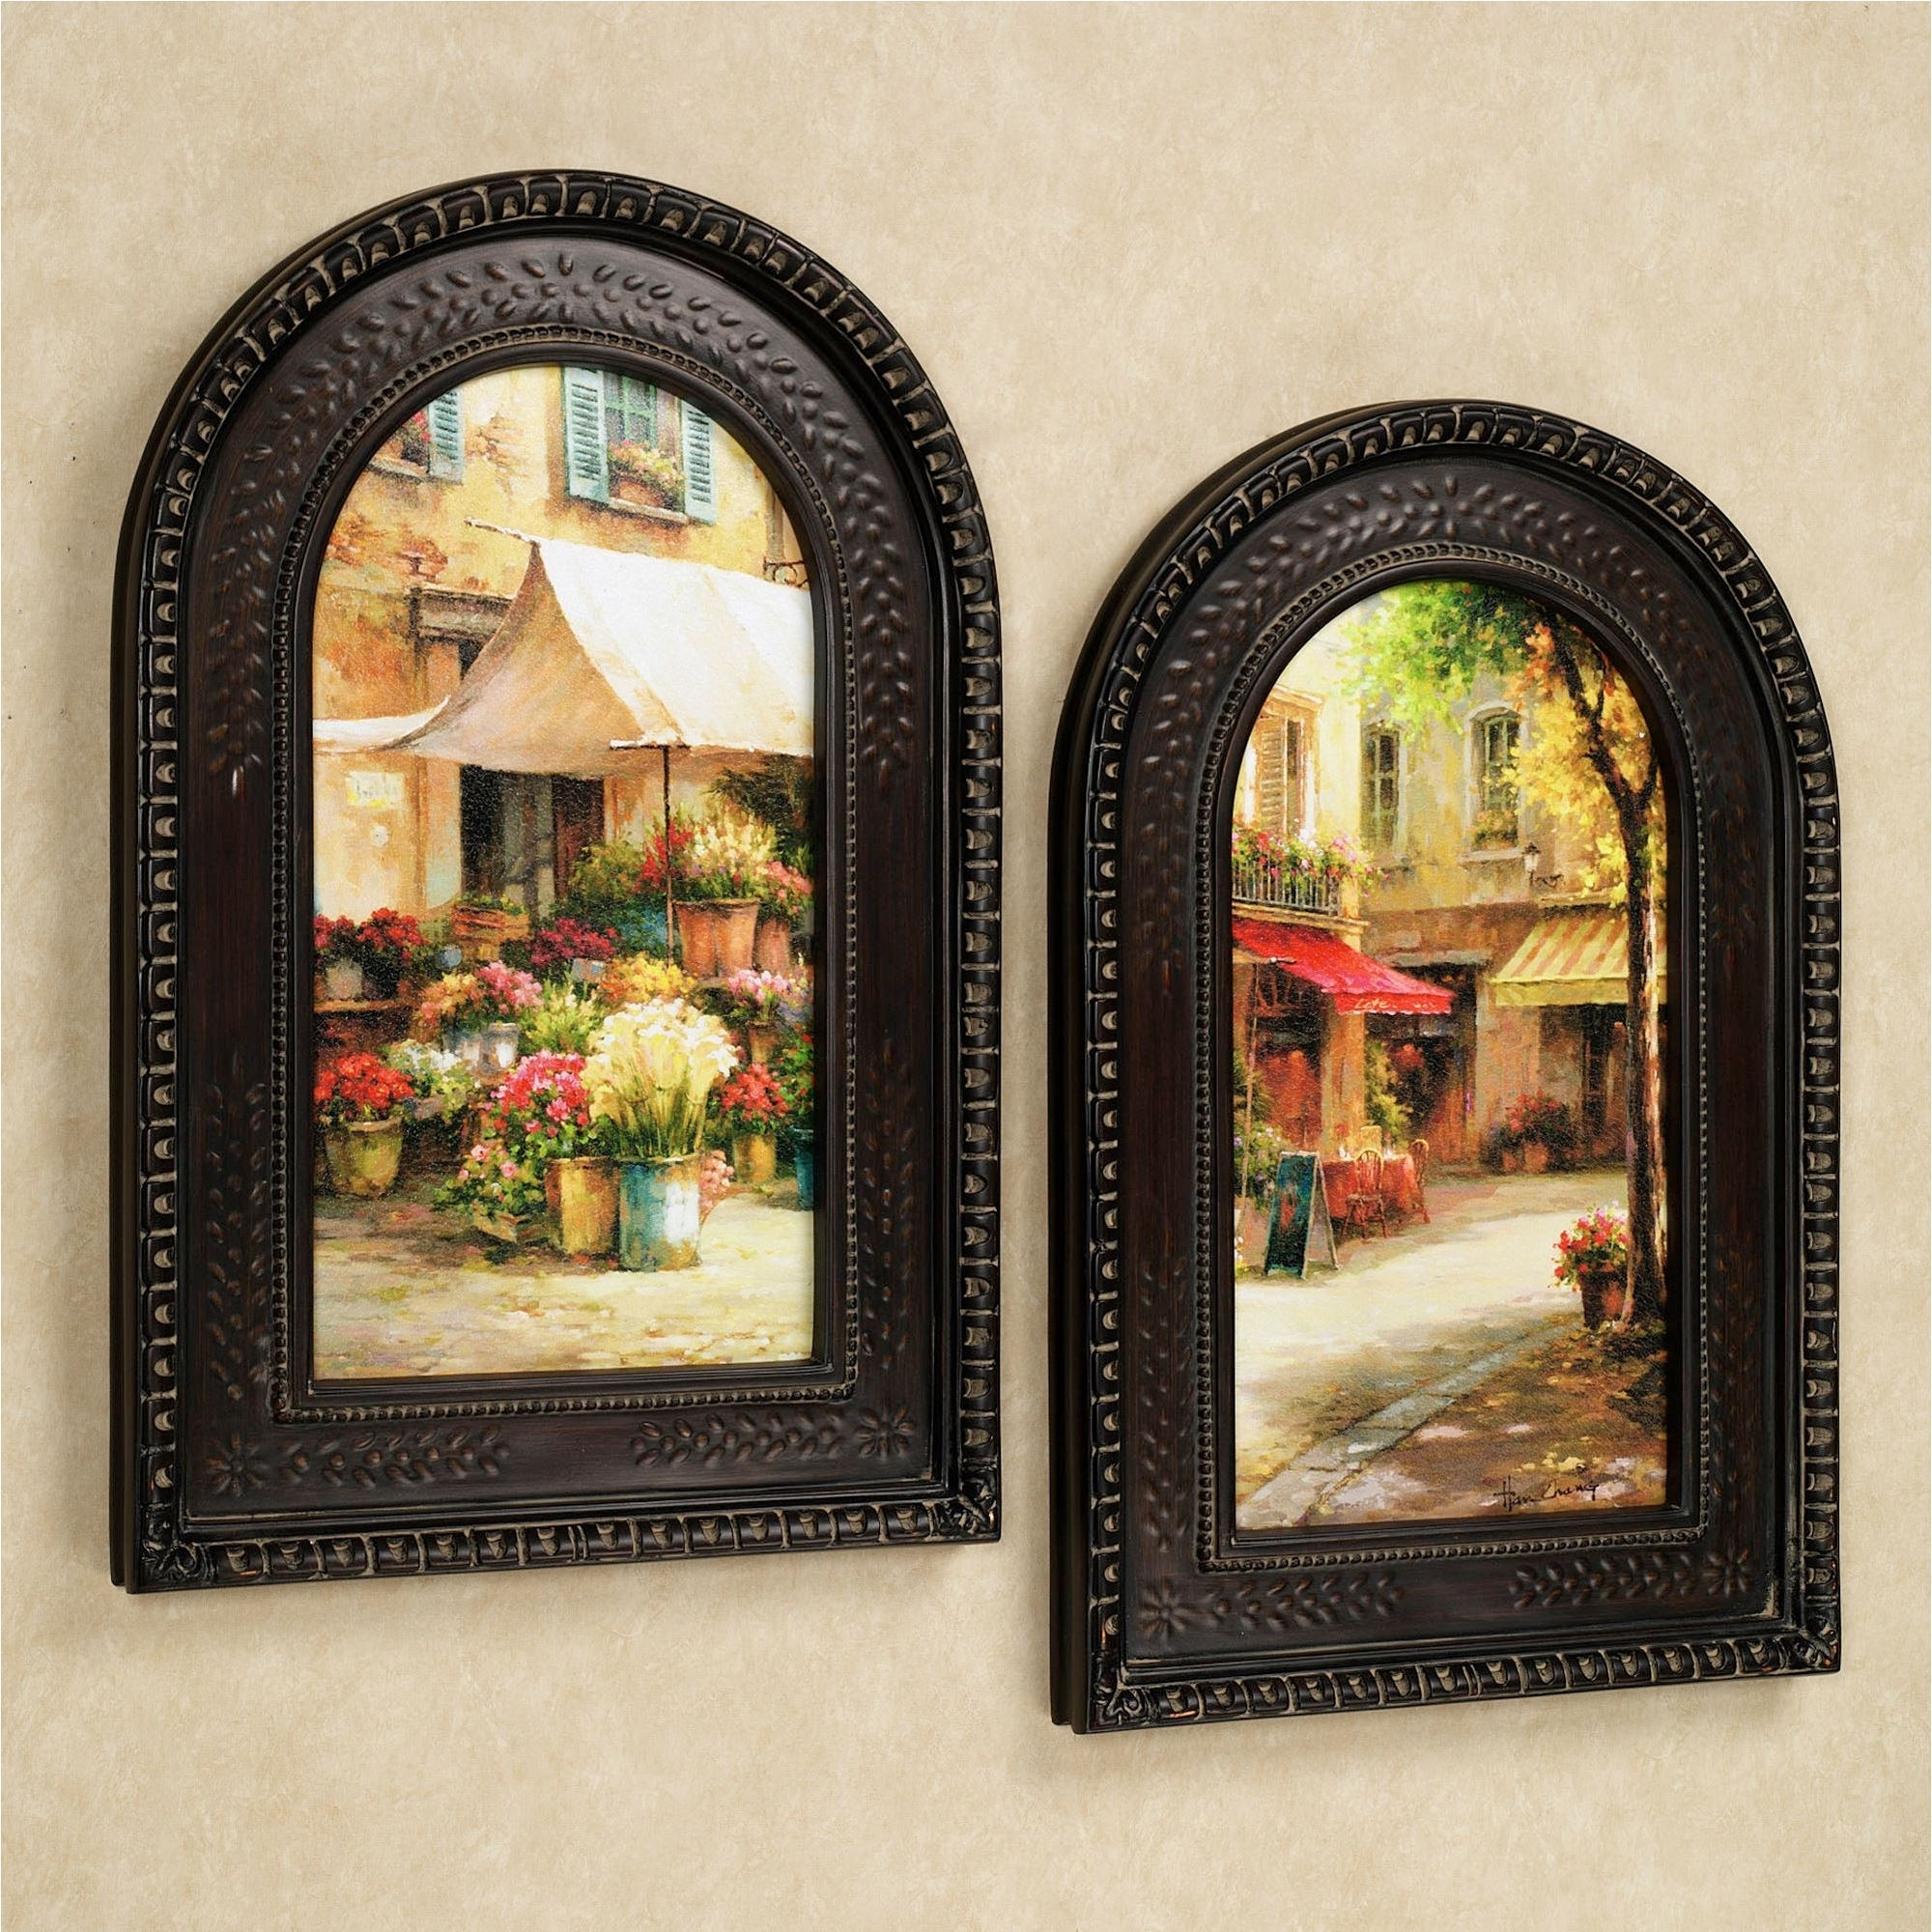 The Flower Market Arched Framed Wall Art Set Intended For 2017 Framed Art Prints Sets (View 15 of 15)